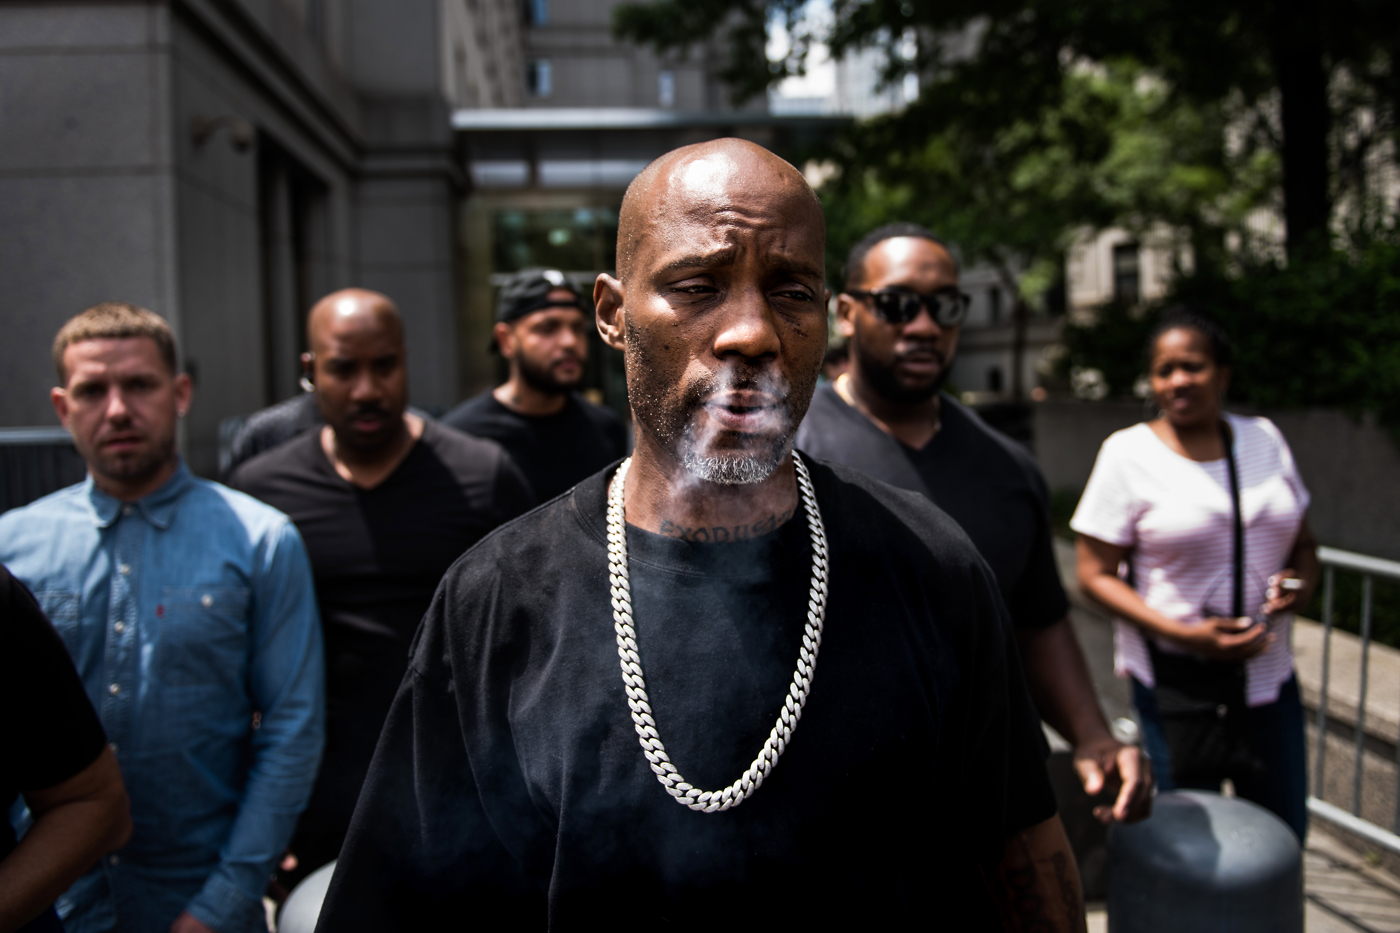 Earl Simmons, the rapper known by his stage name DMX, leaves federal court after an appearance on charges of tax evasion in New York, U.S., on Monday, July 17, 2017.